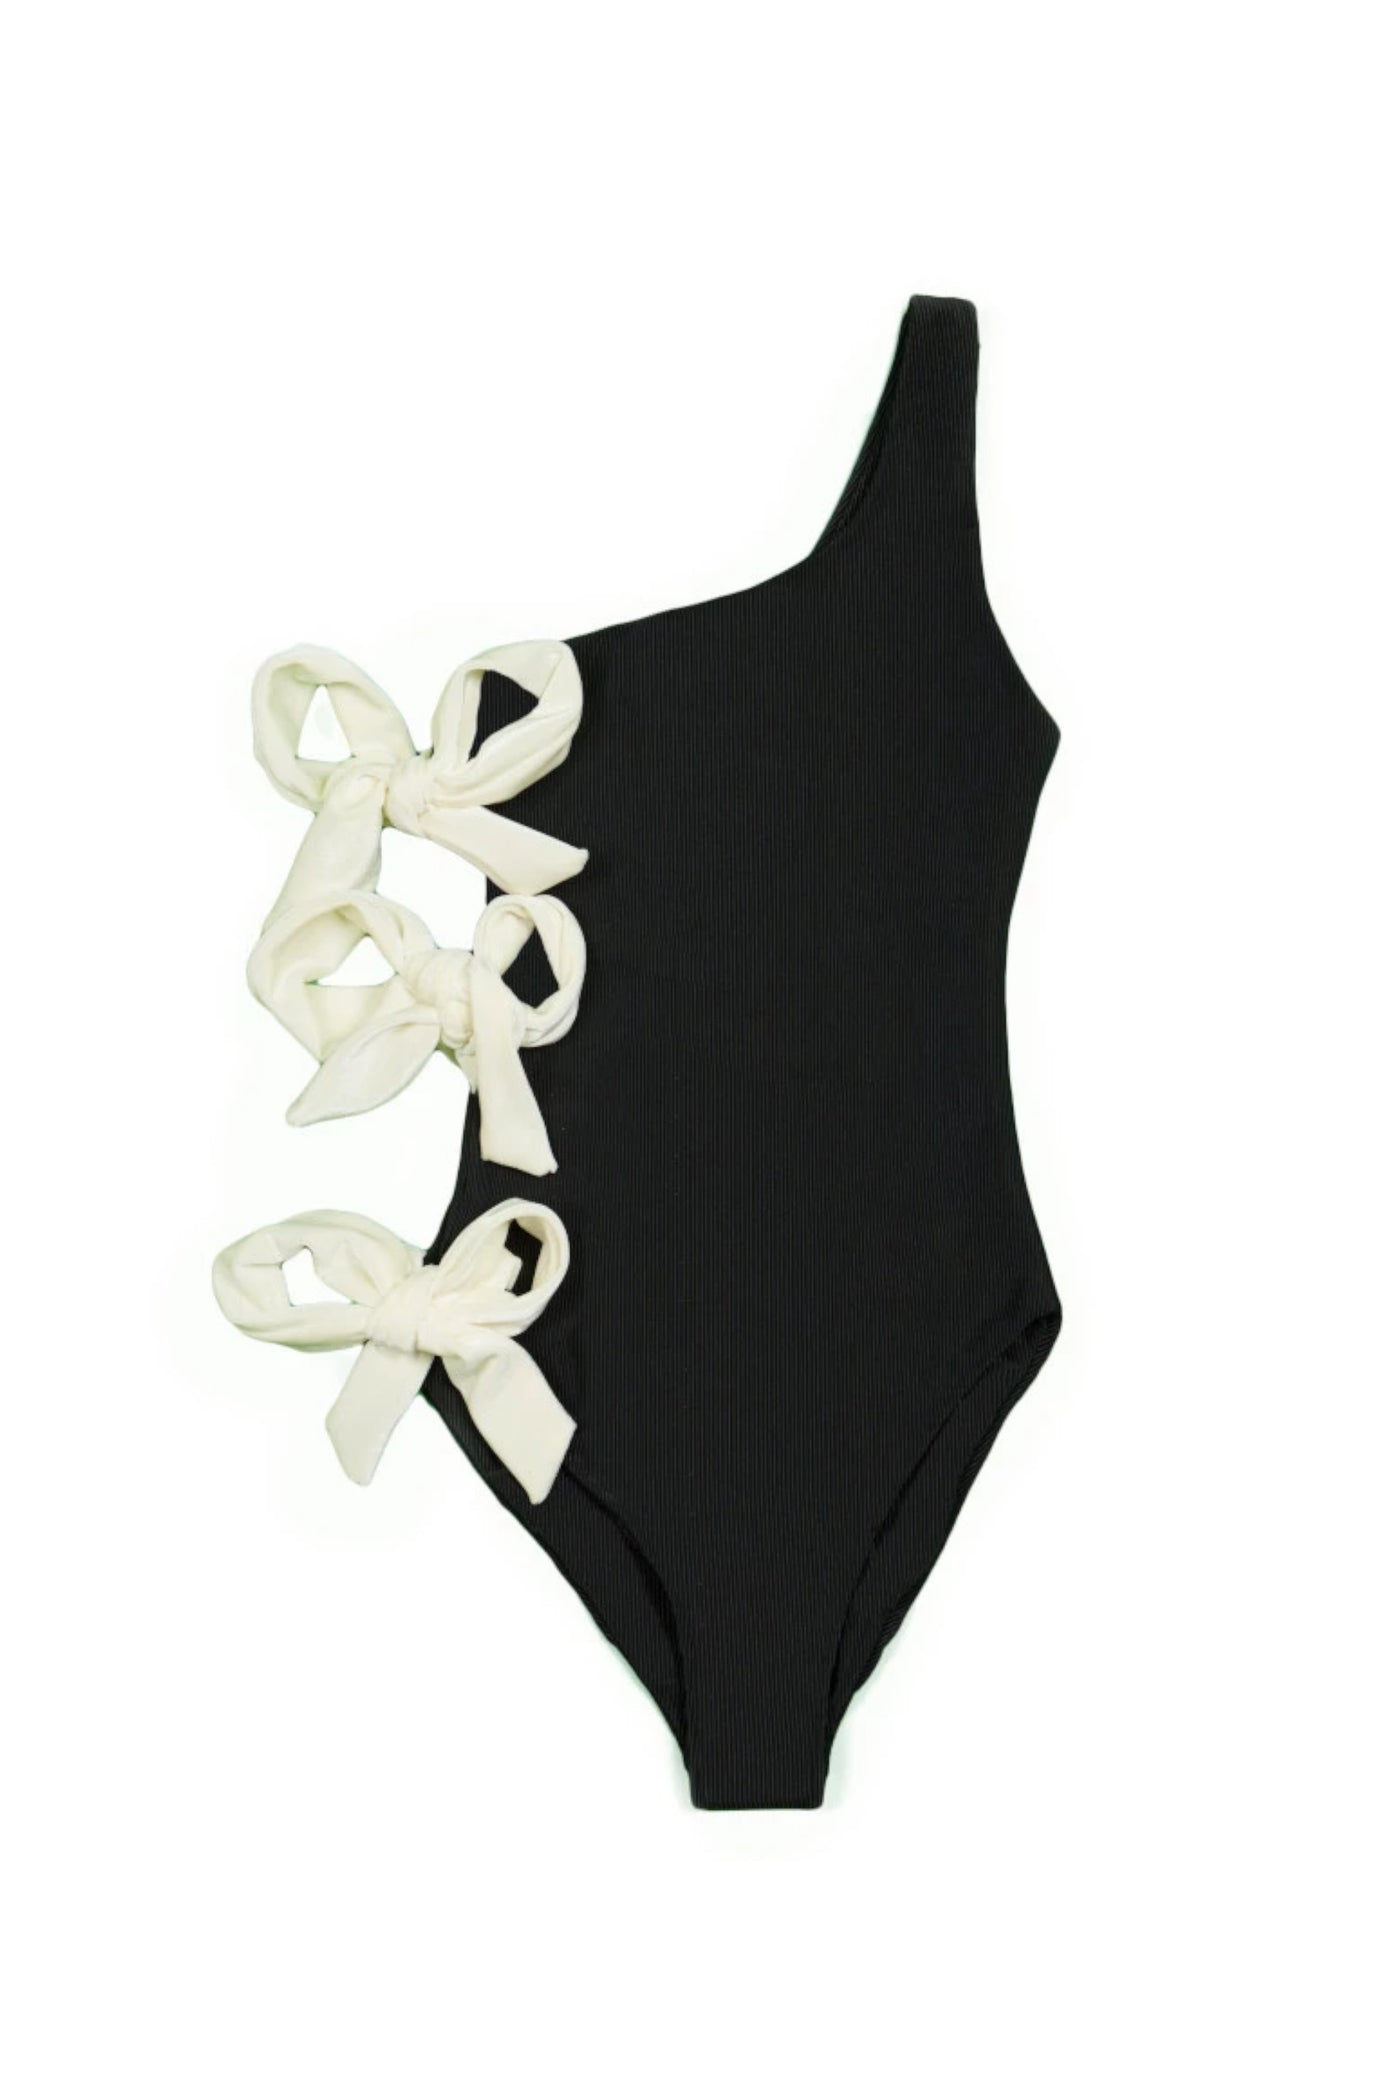 The Zoe One Piece (Ribbed Black/White Velvet)